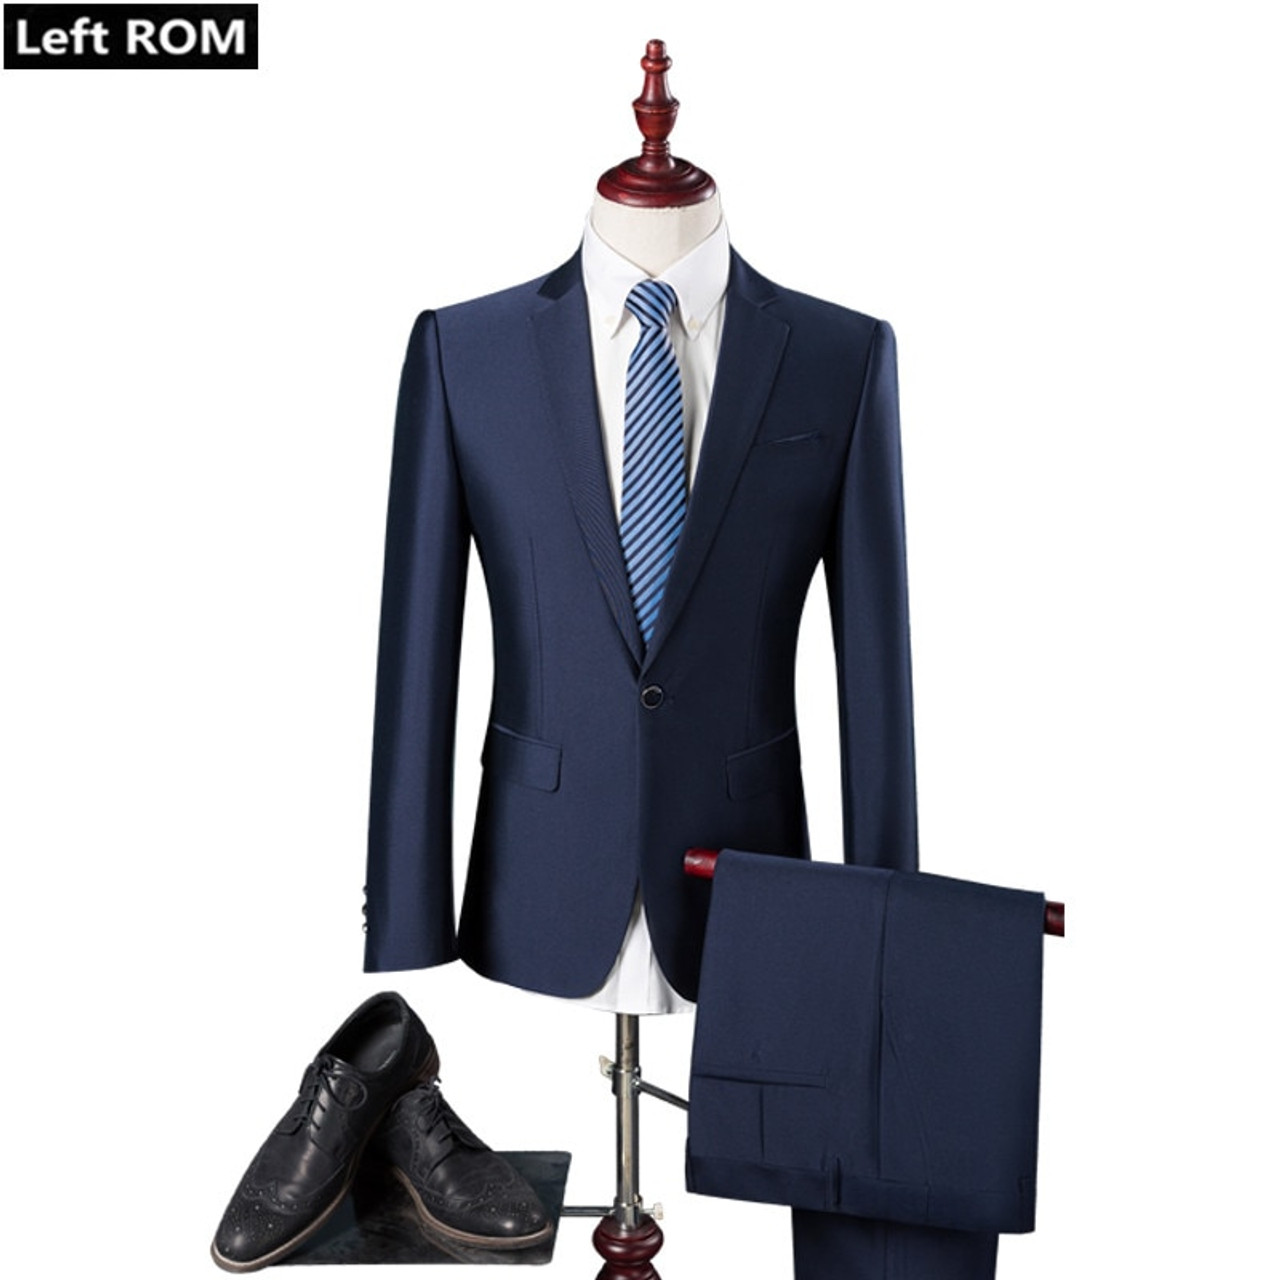 b6989cc925e91 ( Jacket + Pants ) New 2019 Fashion Boutique Pure Color Groom Wedding Dress  Mens Suits / Casual Business Brand Forma Male Suits